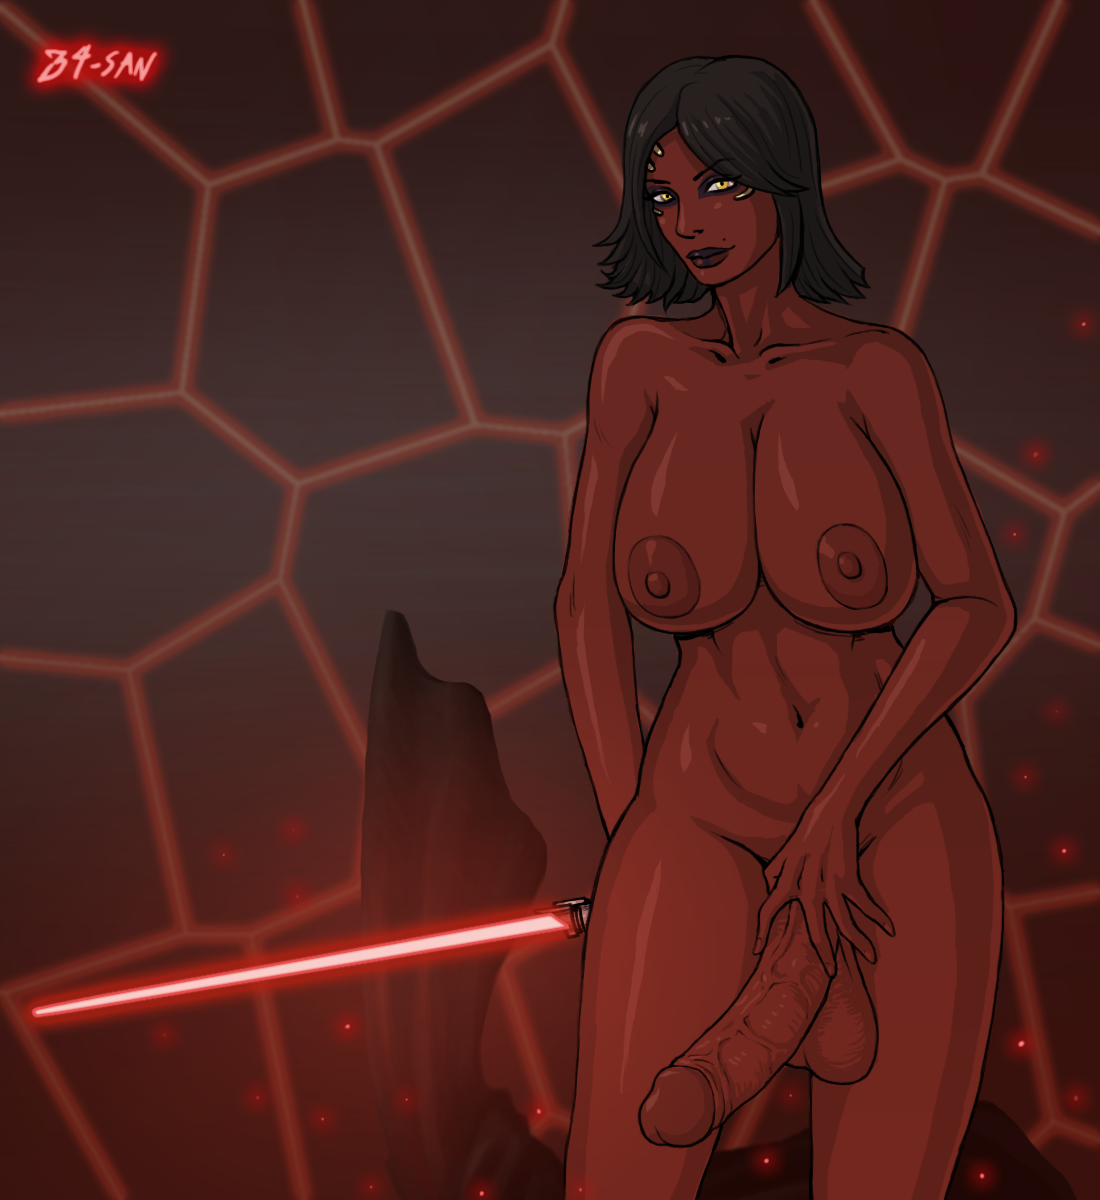 Seems Sith star wars porn hentai